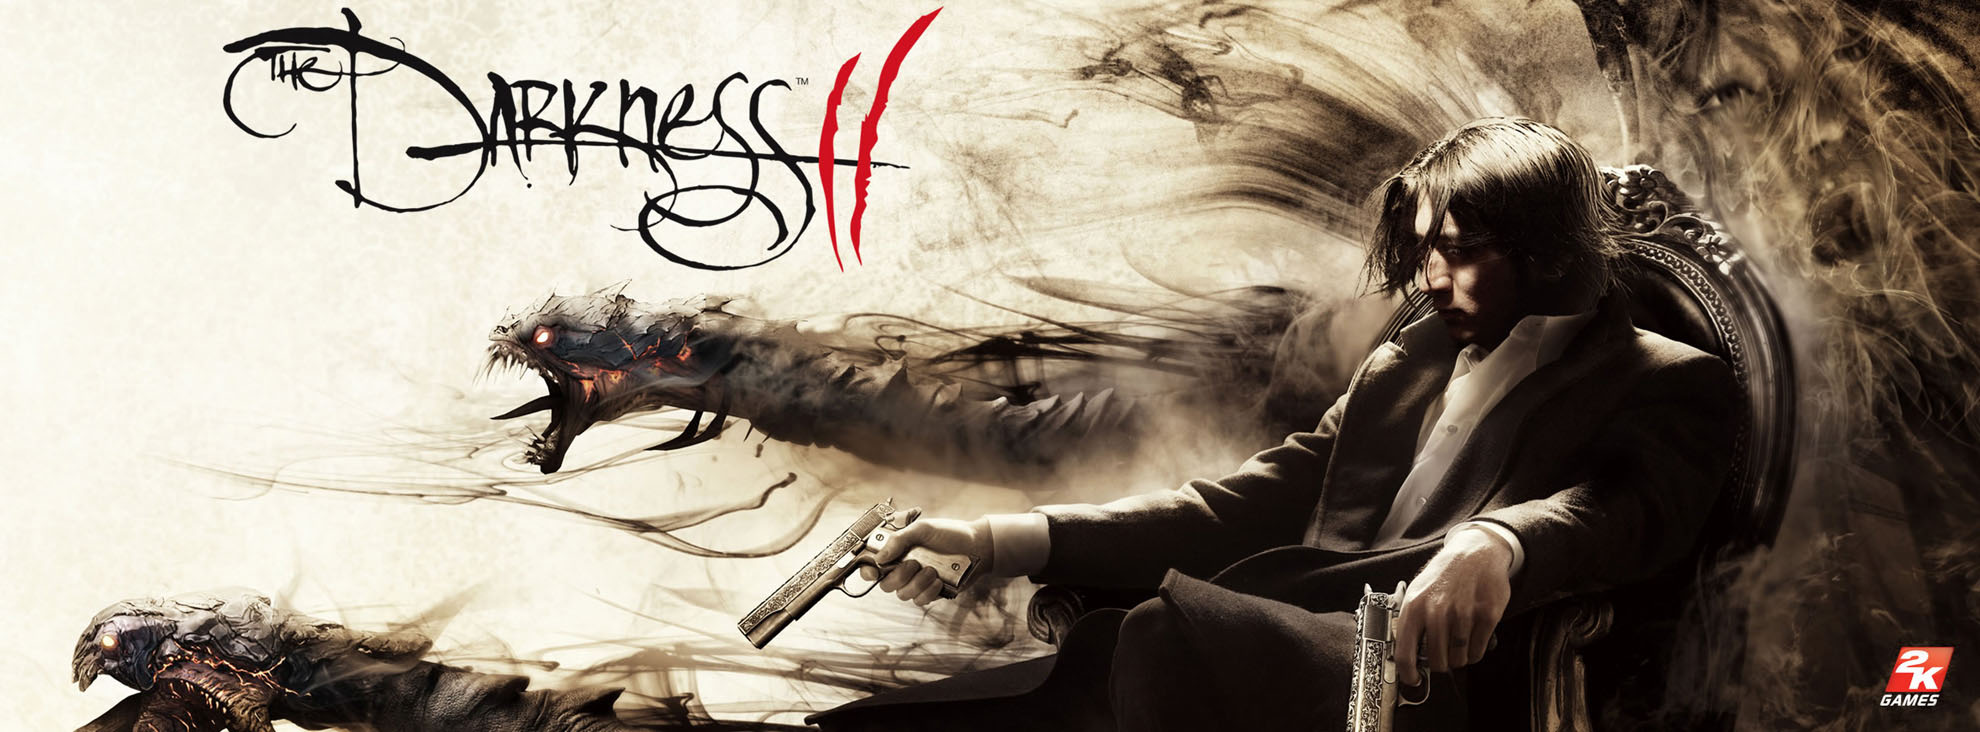 The Darkness II Official Cover Art Image